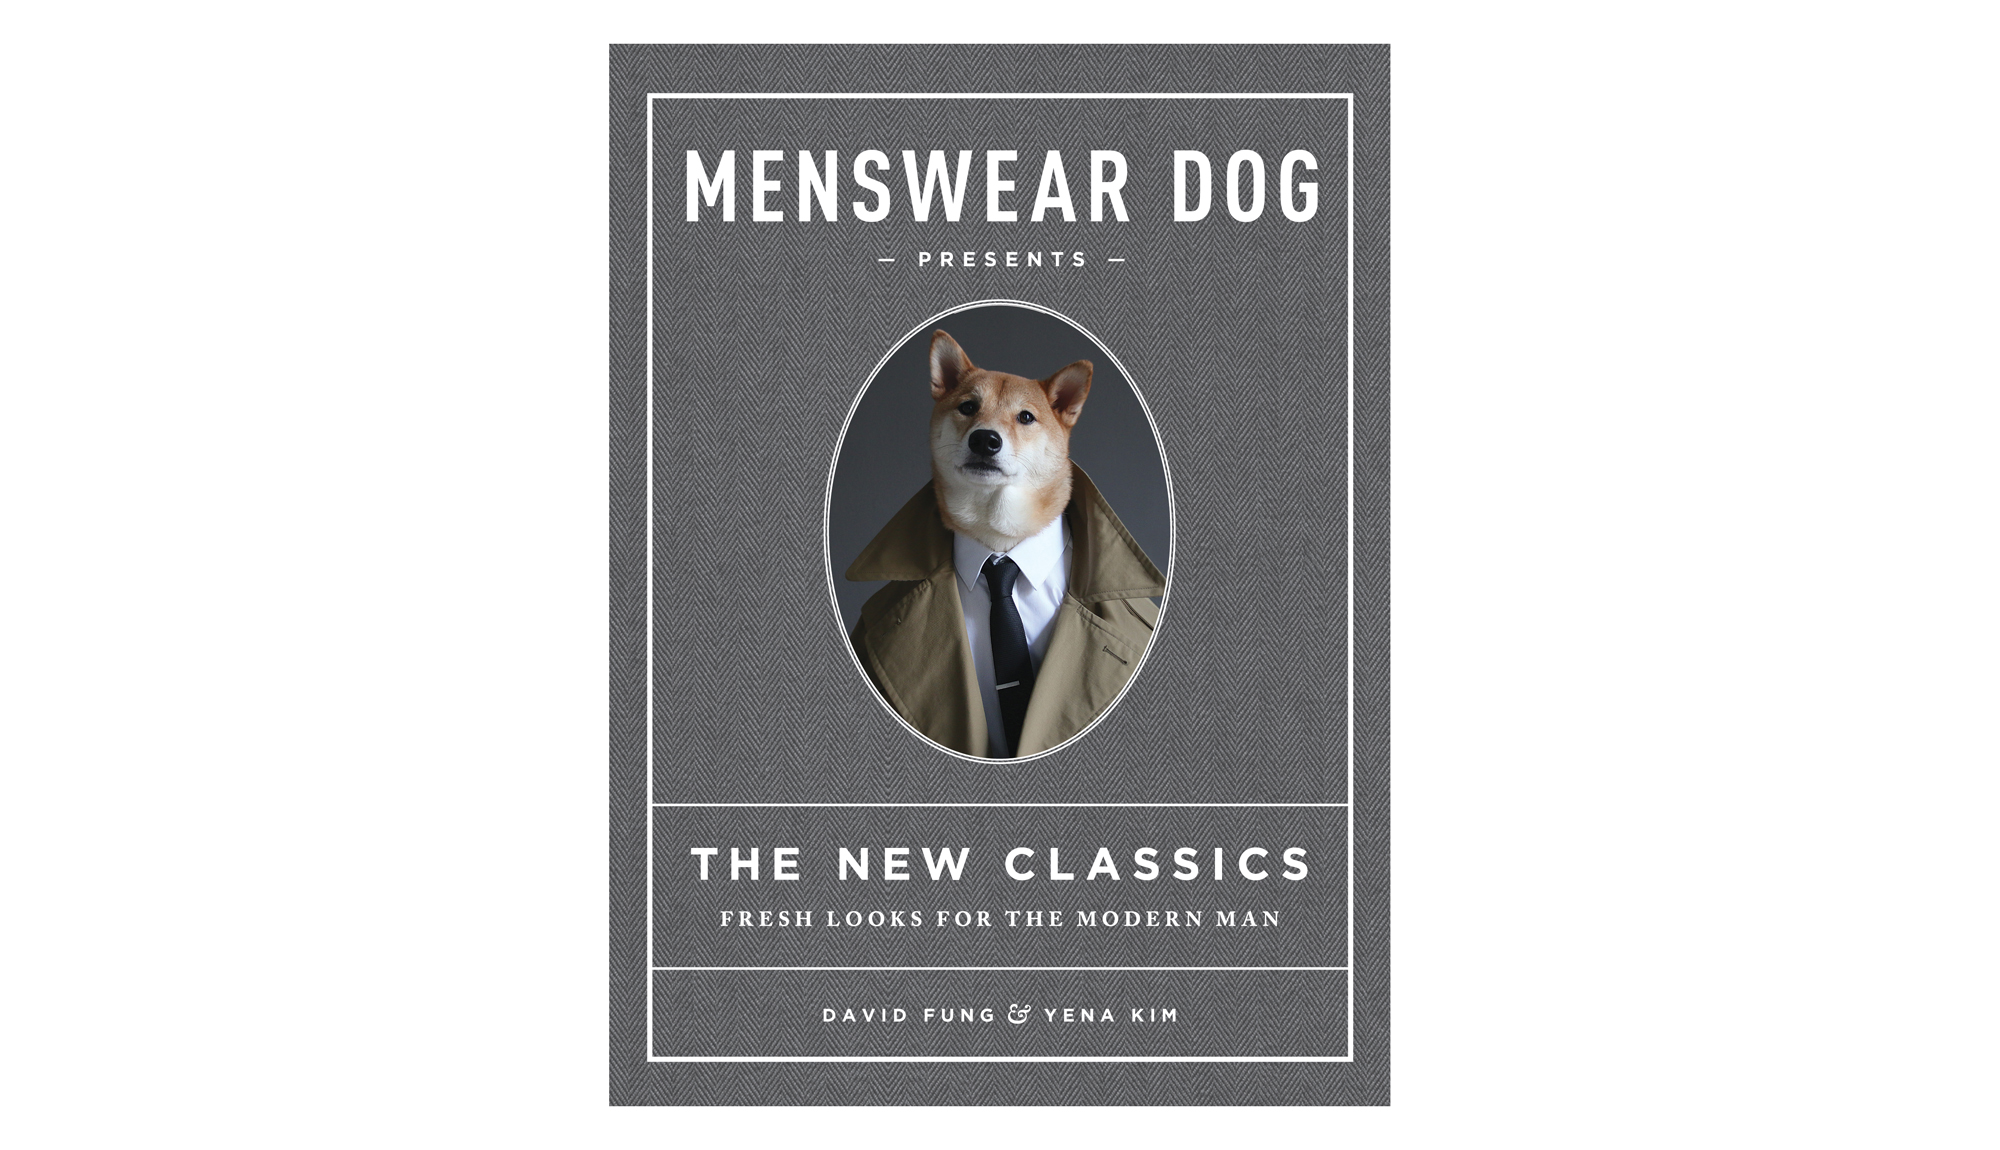 menswear-dog-book